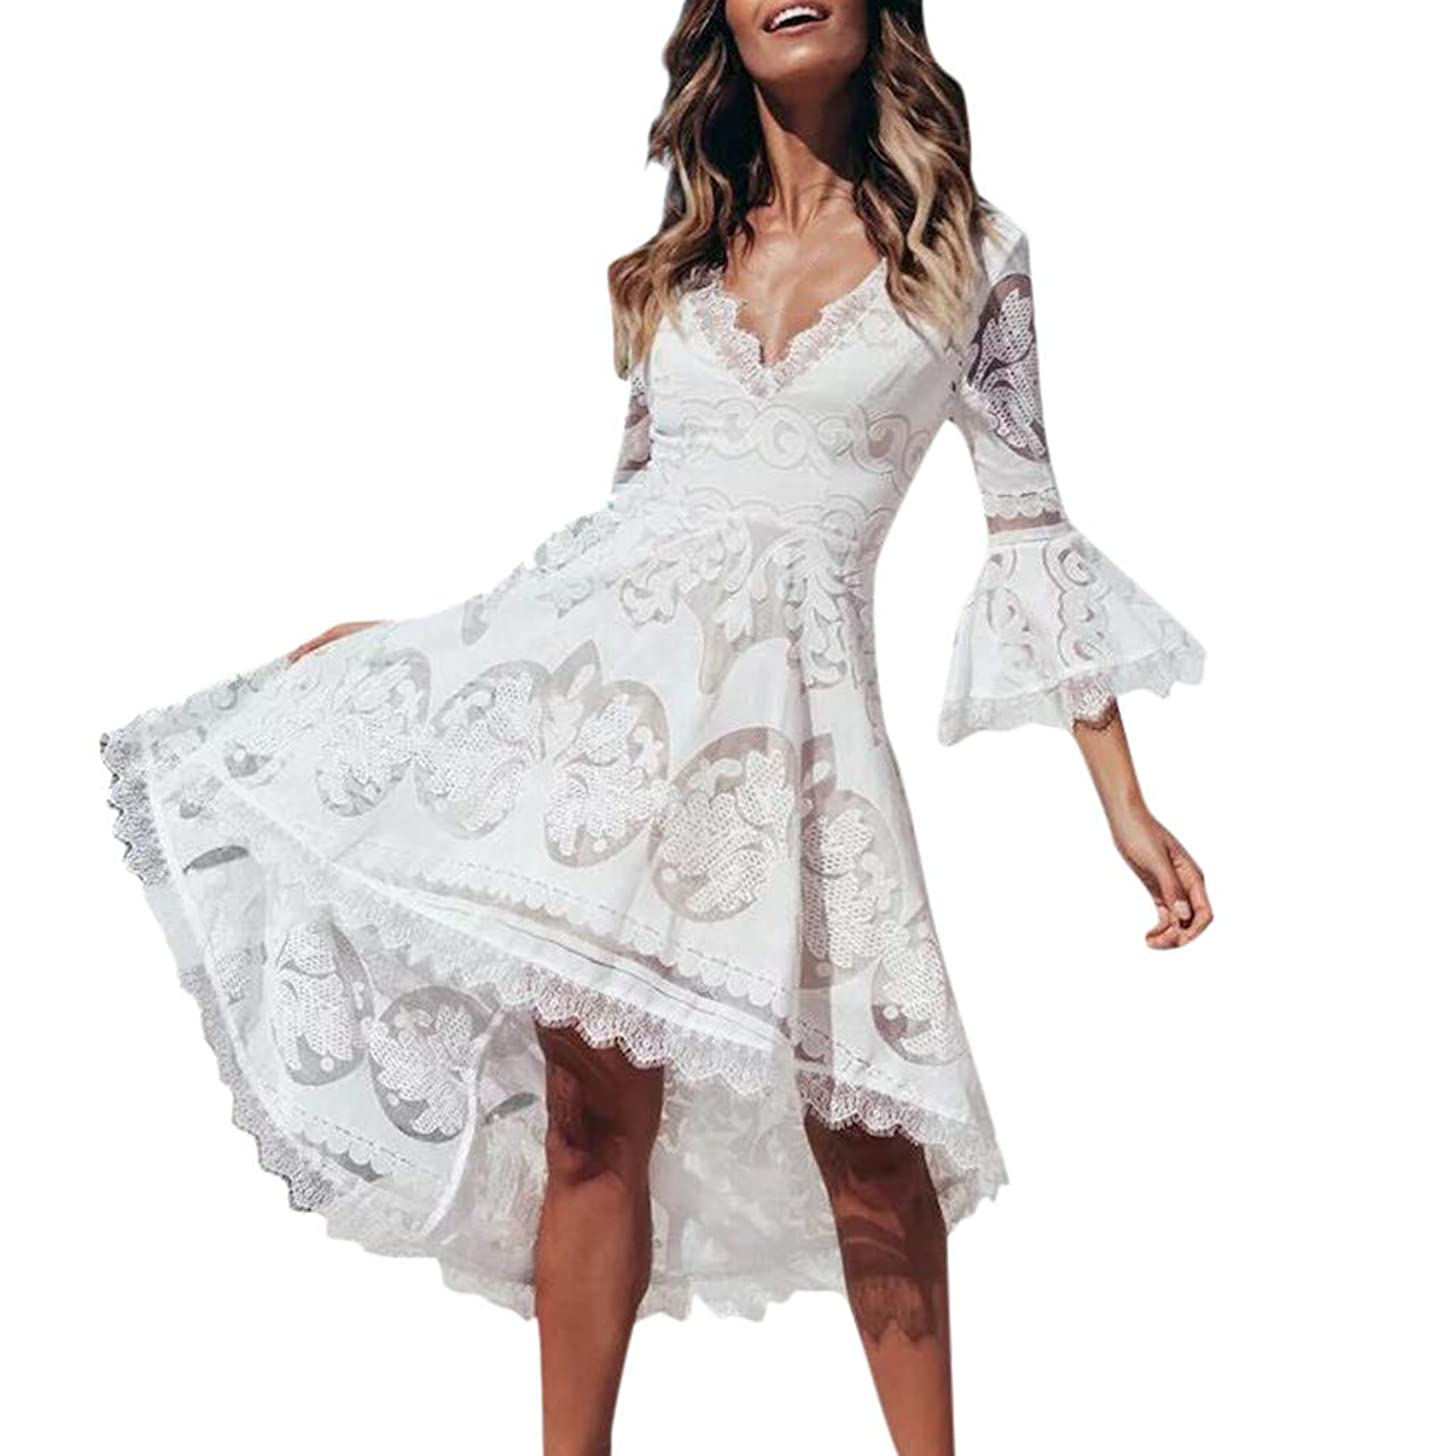 Caopixx Women Flare Sleeve V-Neck Hollow Out Patchwork Tuxedo Evening Party Holiday Lace Dress